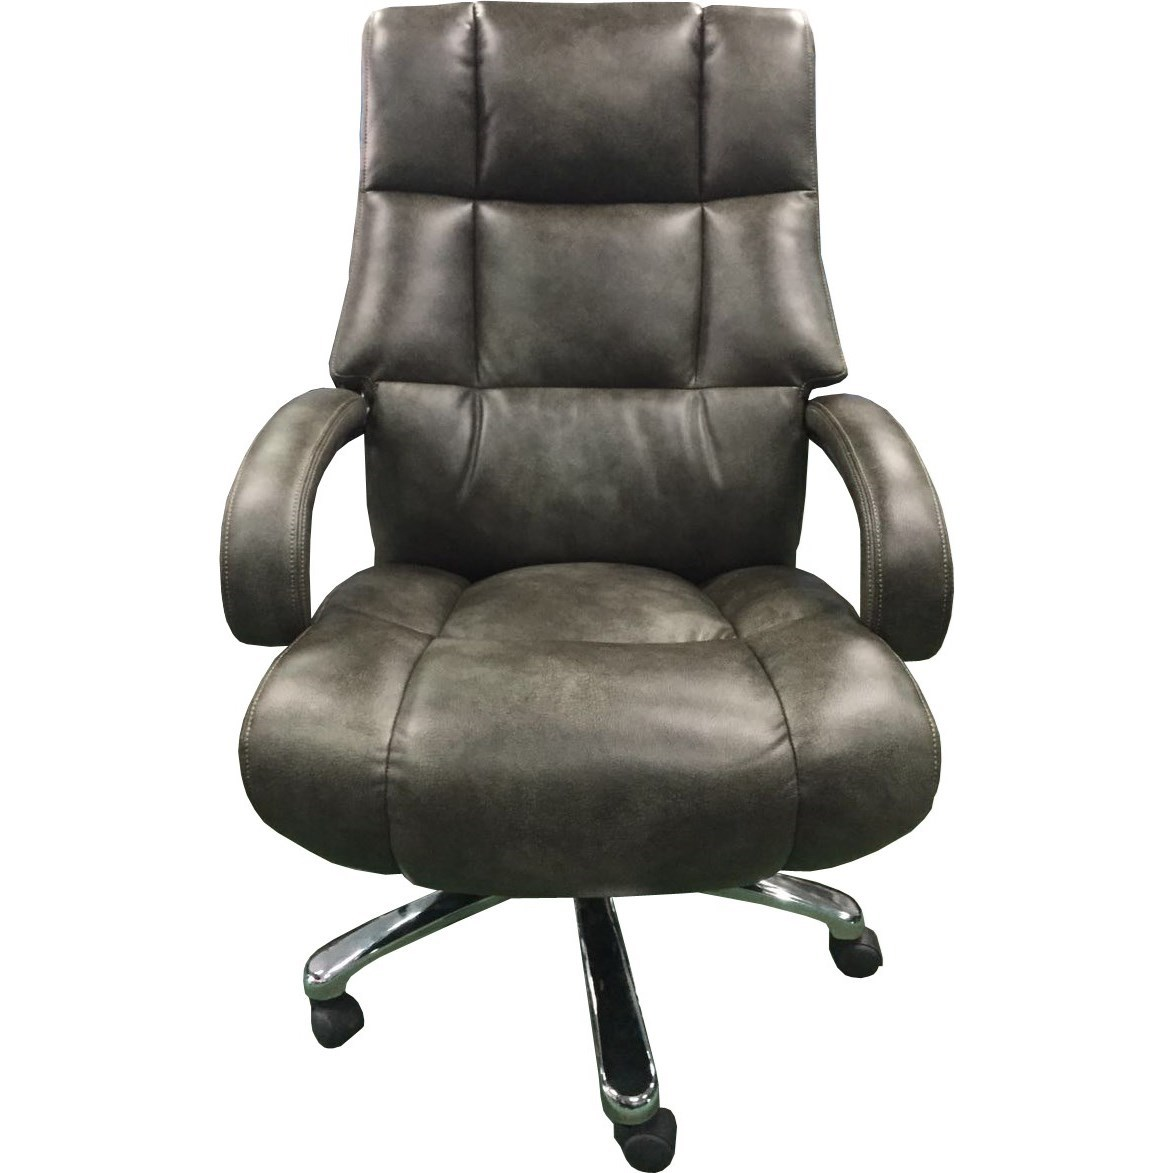 Parker Living Desk Chairs Heavy Duty Desk Chair with ...